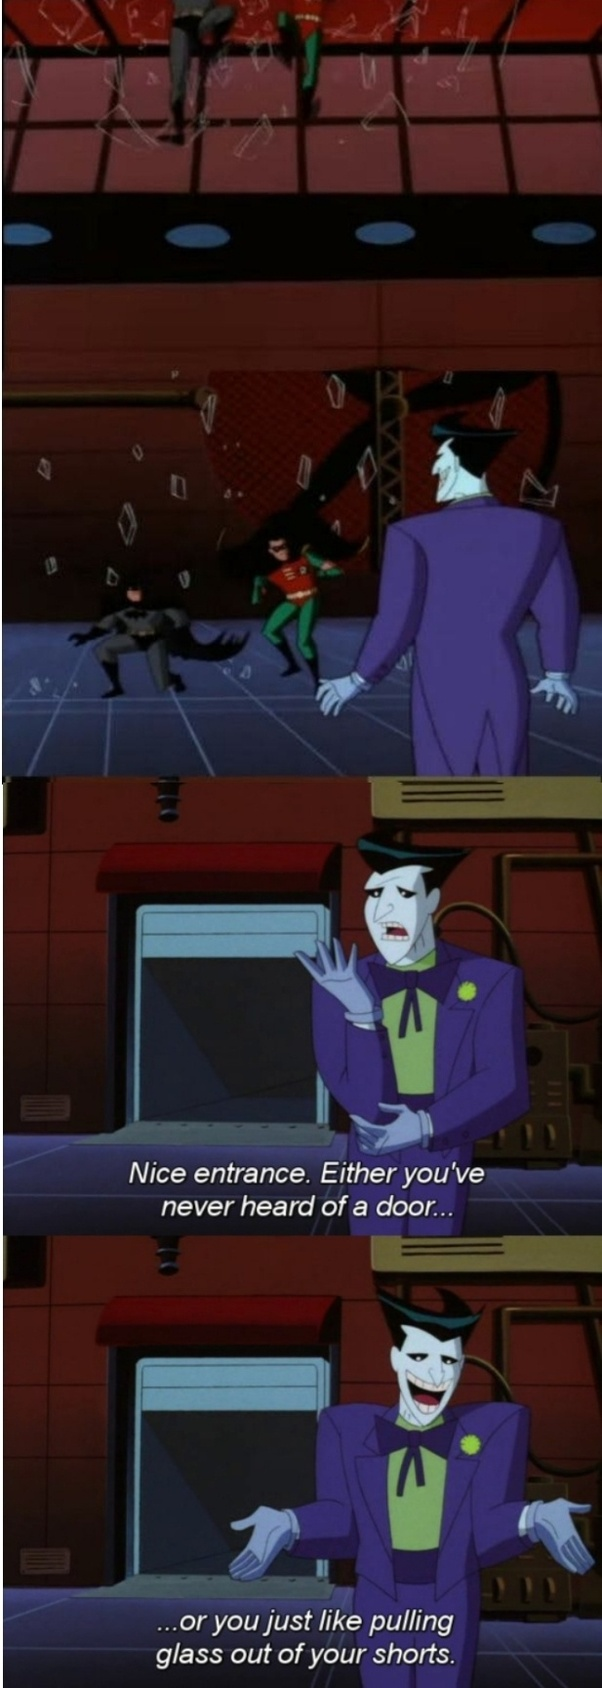 Is The Joker Ever Actually Funny Or Is The Humour Only Apparent To